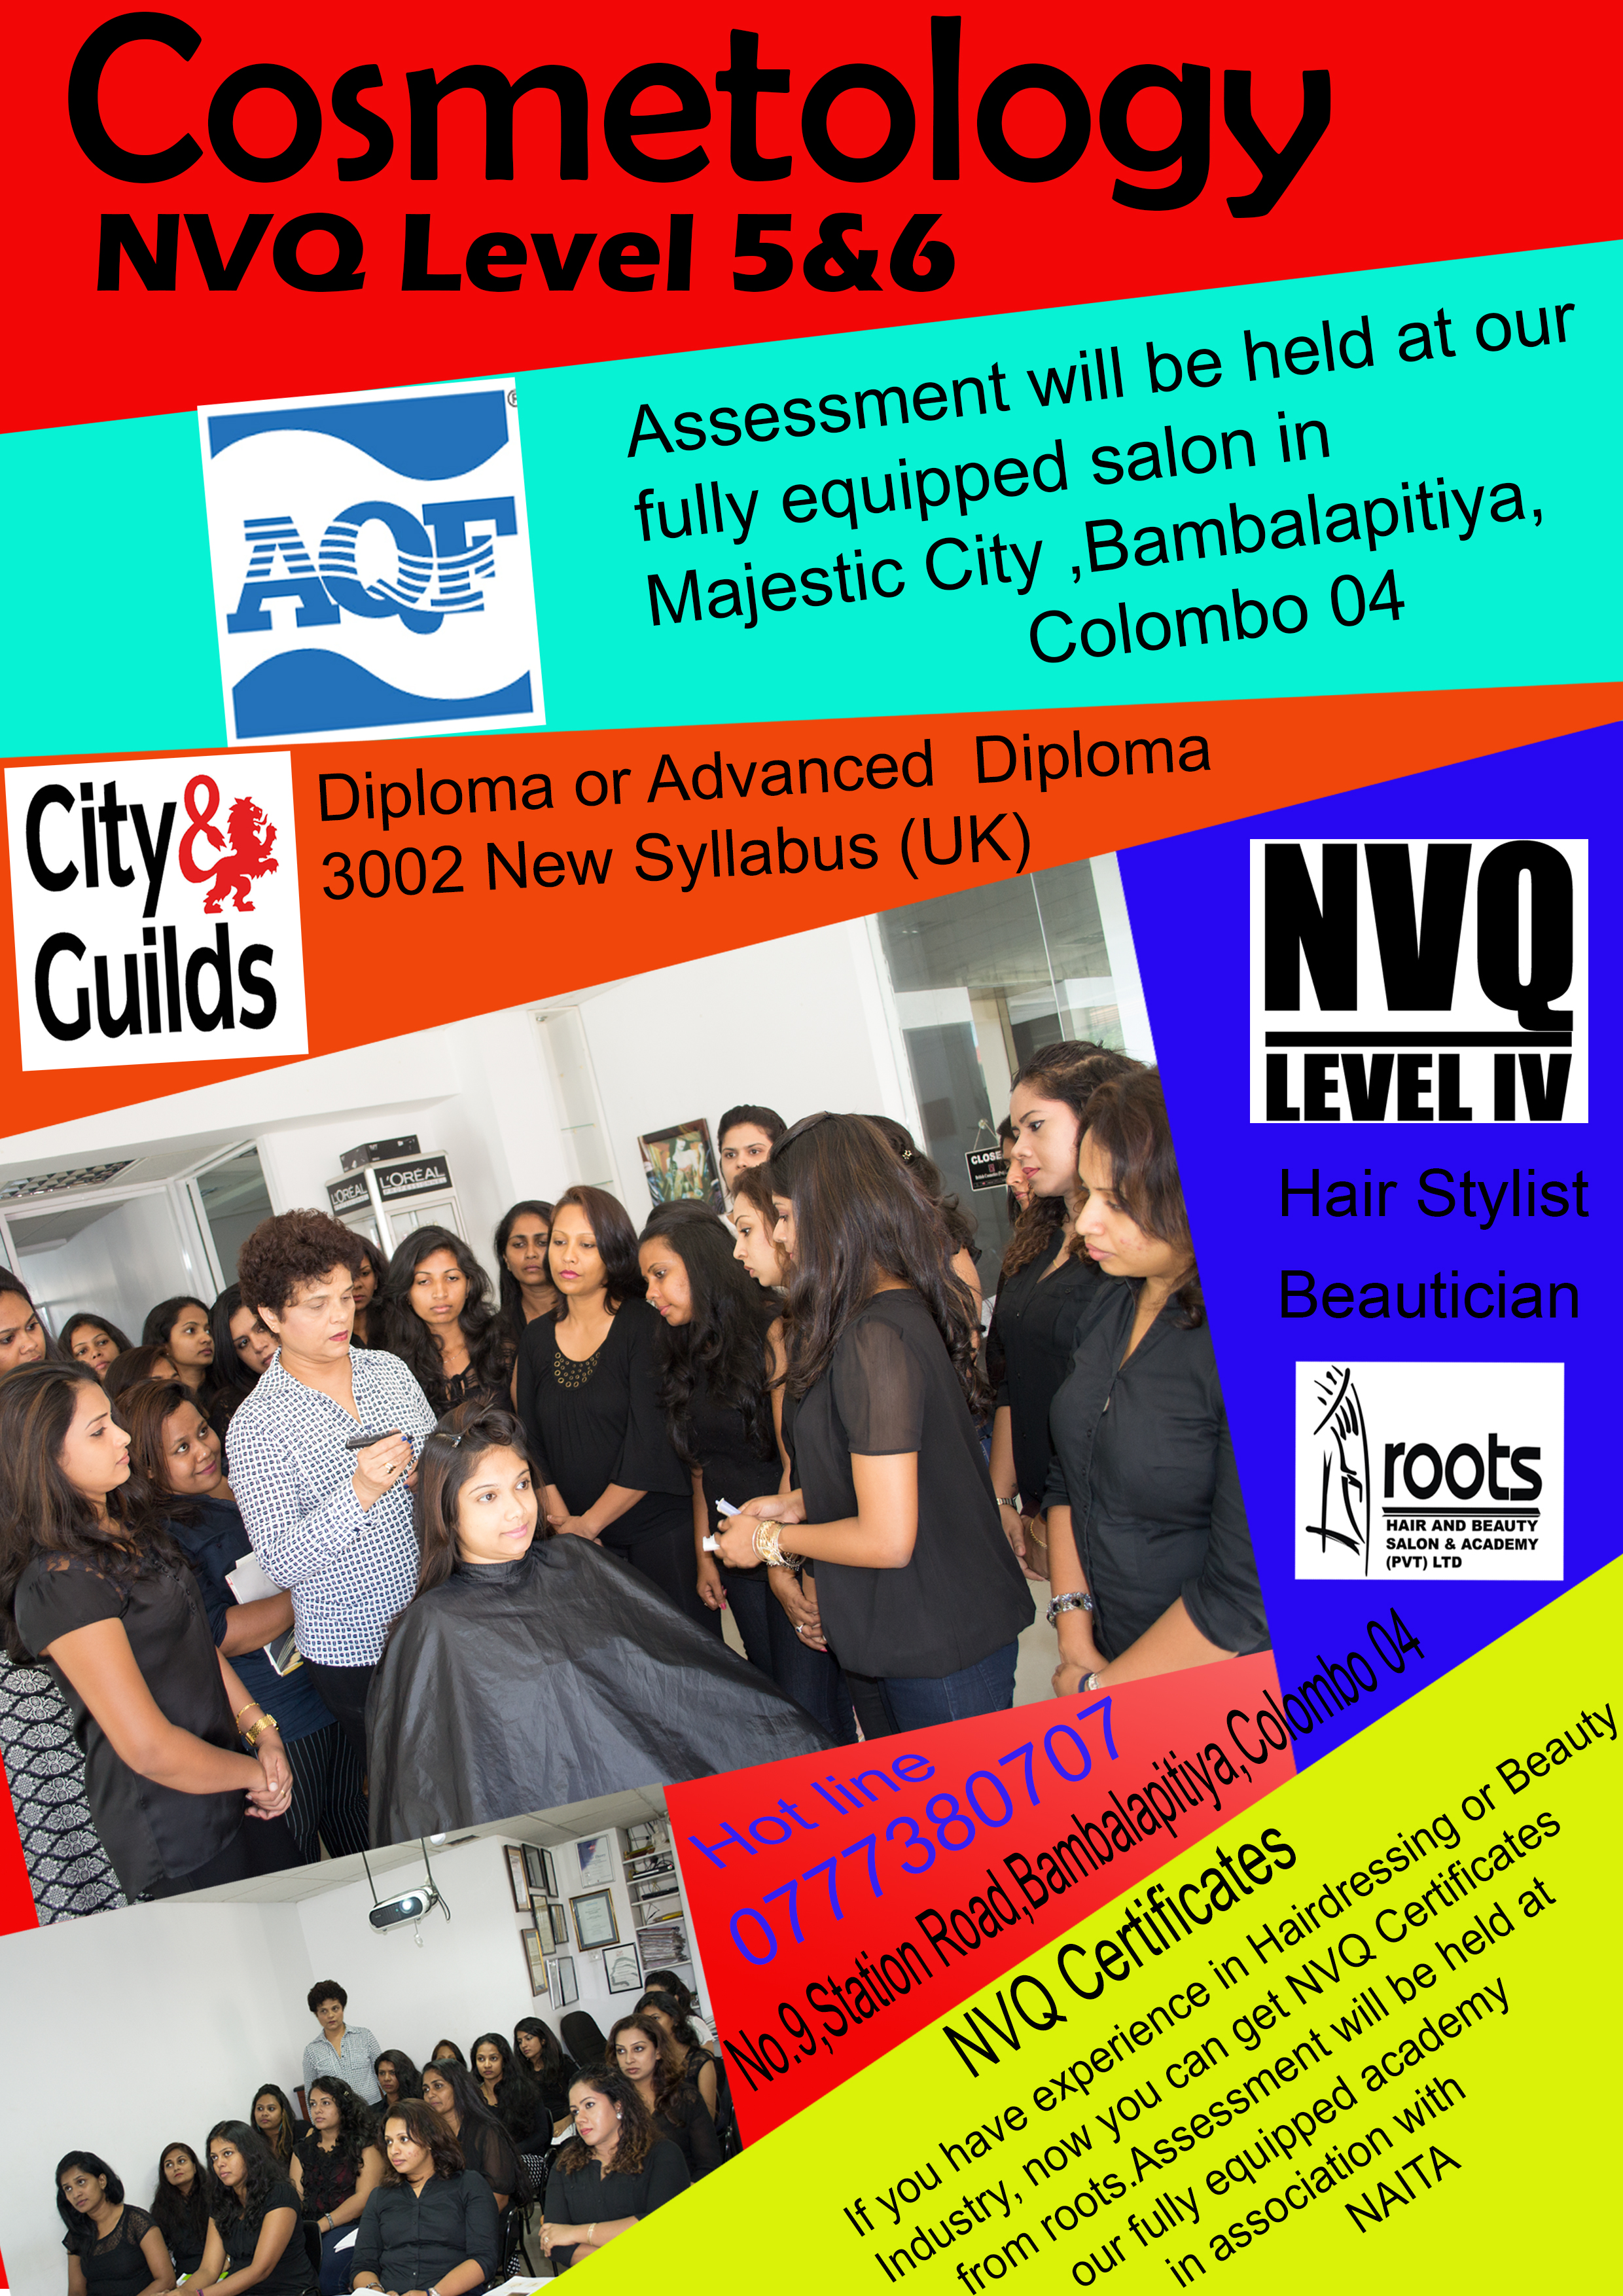 Cosmetology - NVQ Level 5&6 | Roots Hair and Beauty Salon & Academy